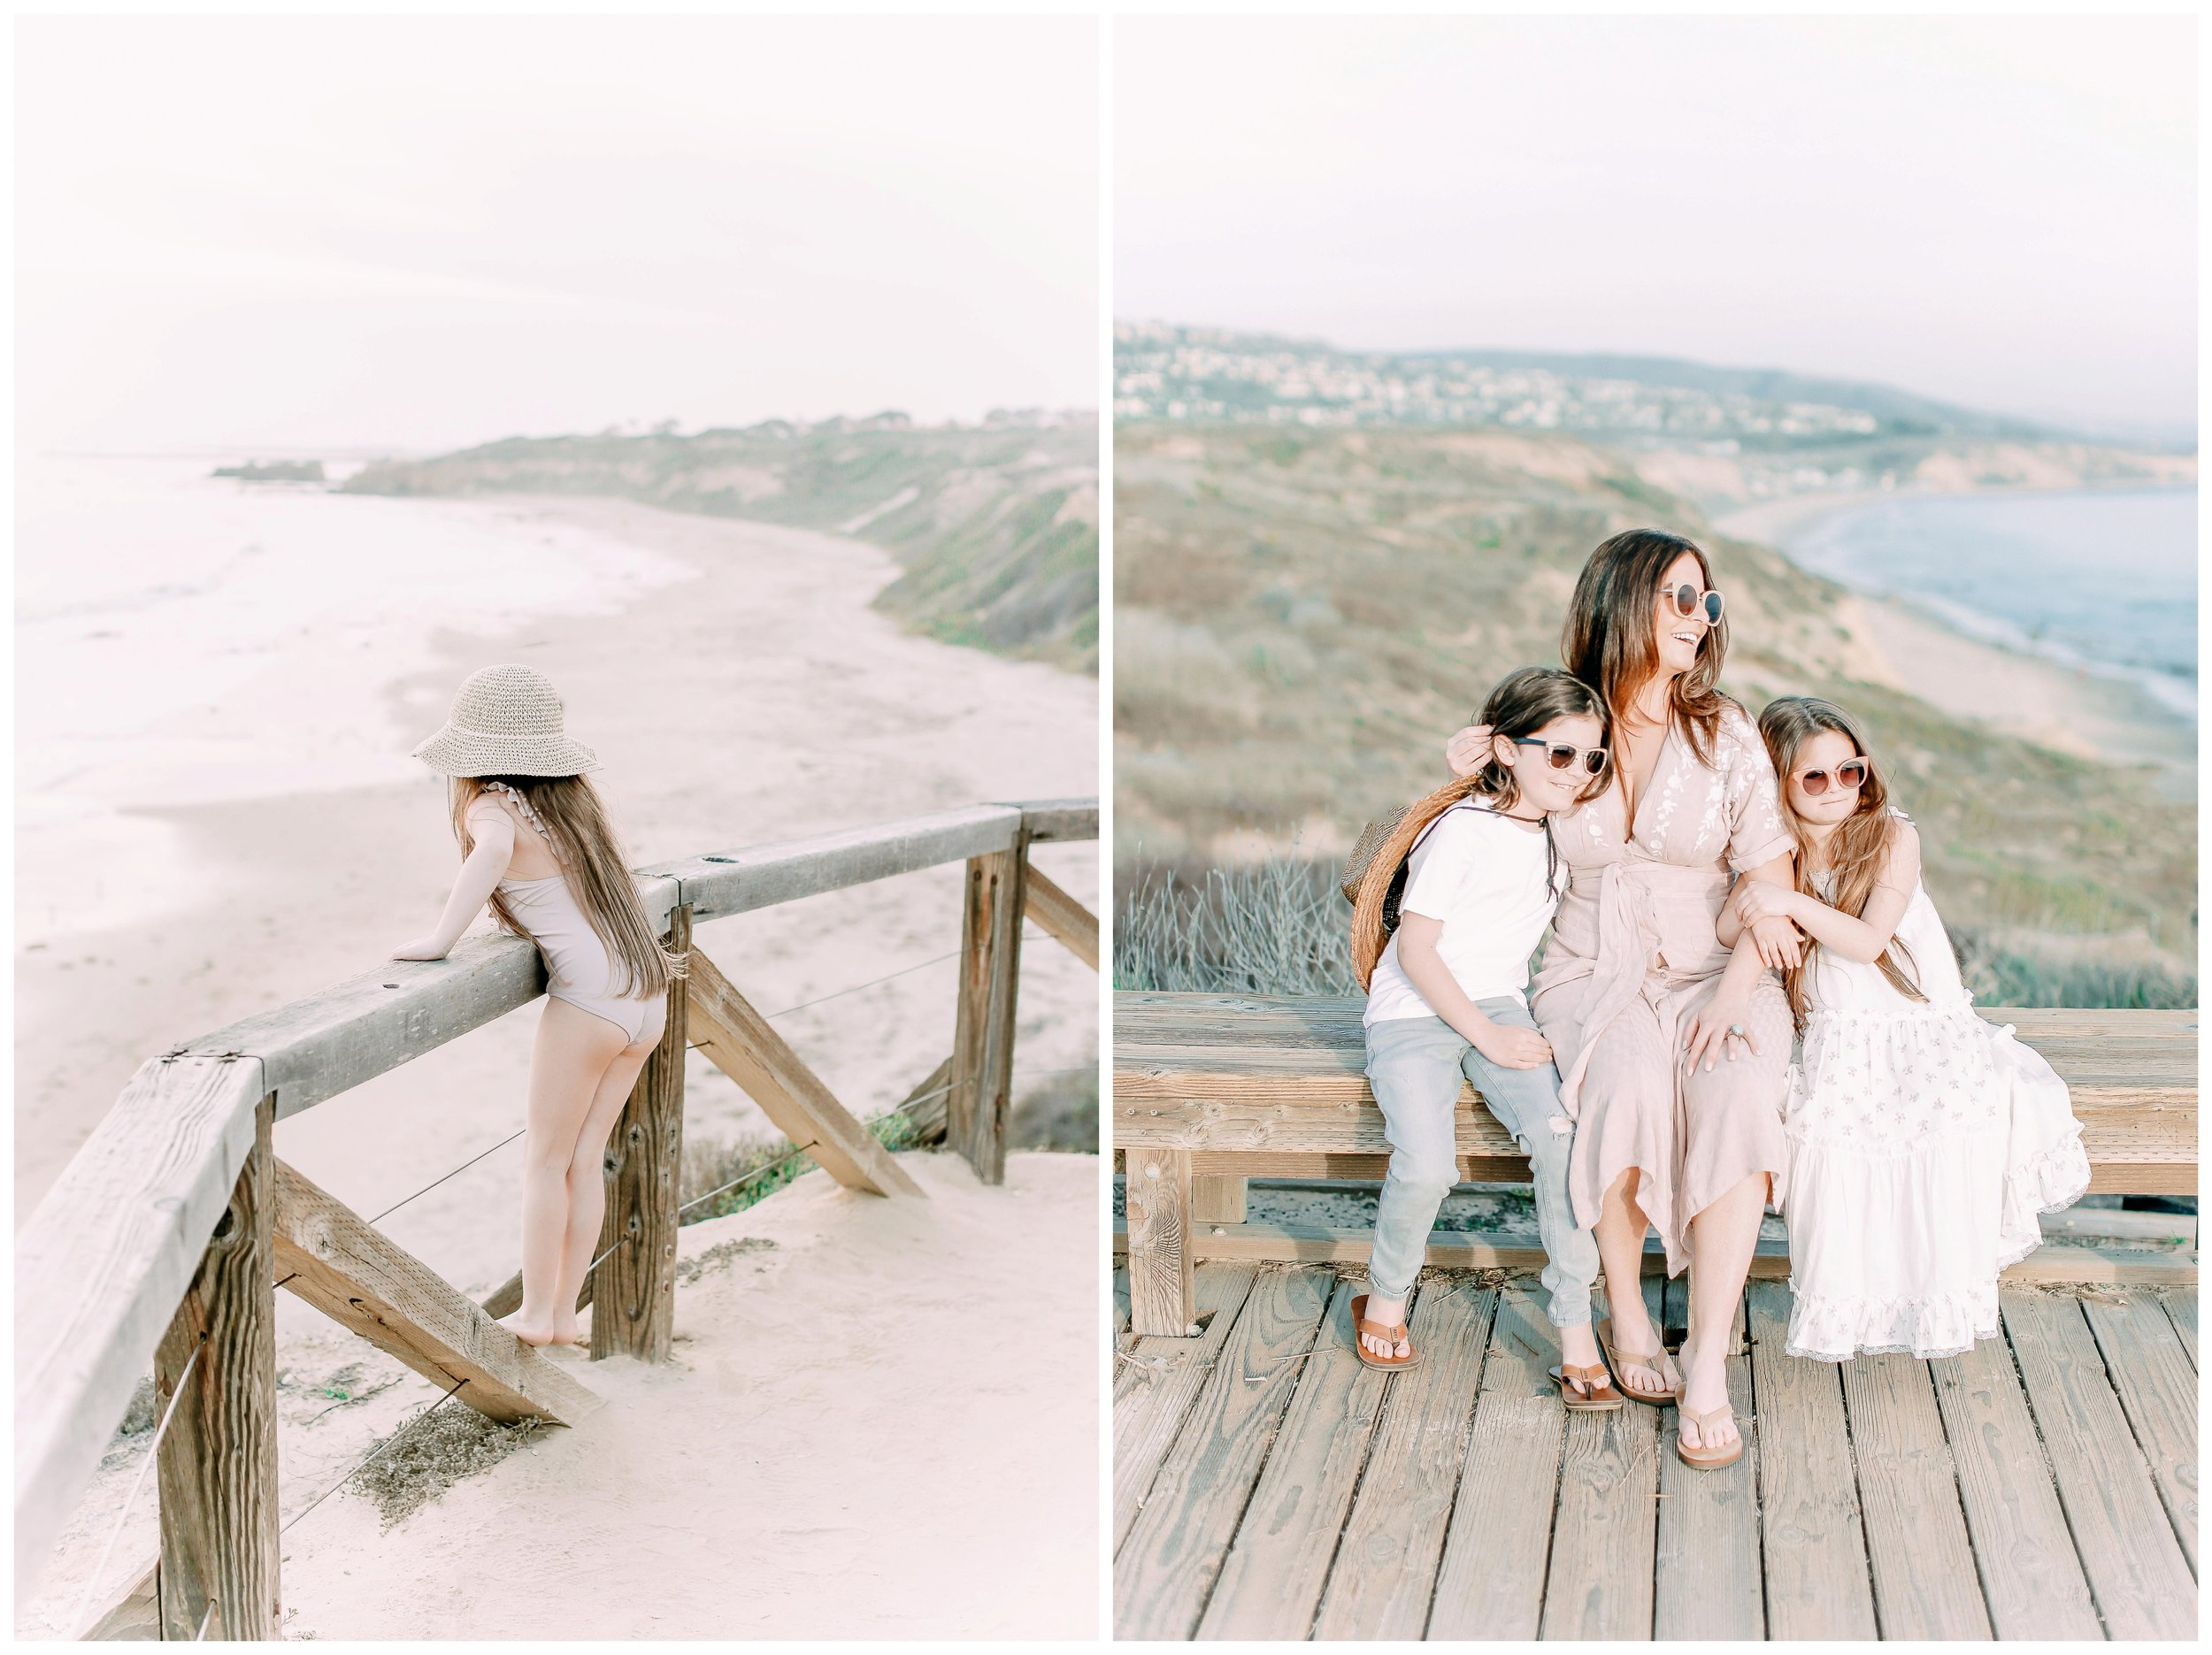 Crystal-Cove-State-Beach-Motherhood- Session-Crystal-Cove-Newport-Beach-Family-Photographer-Crystal-Cove-Minnow-Swim-Cori-Kleckner-Photography-Orange-County-Vacation-Family-Photos-Session-_0860.jpg